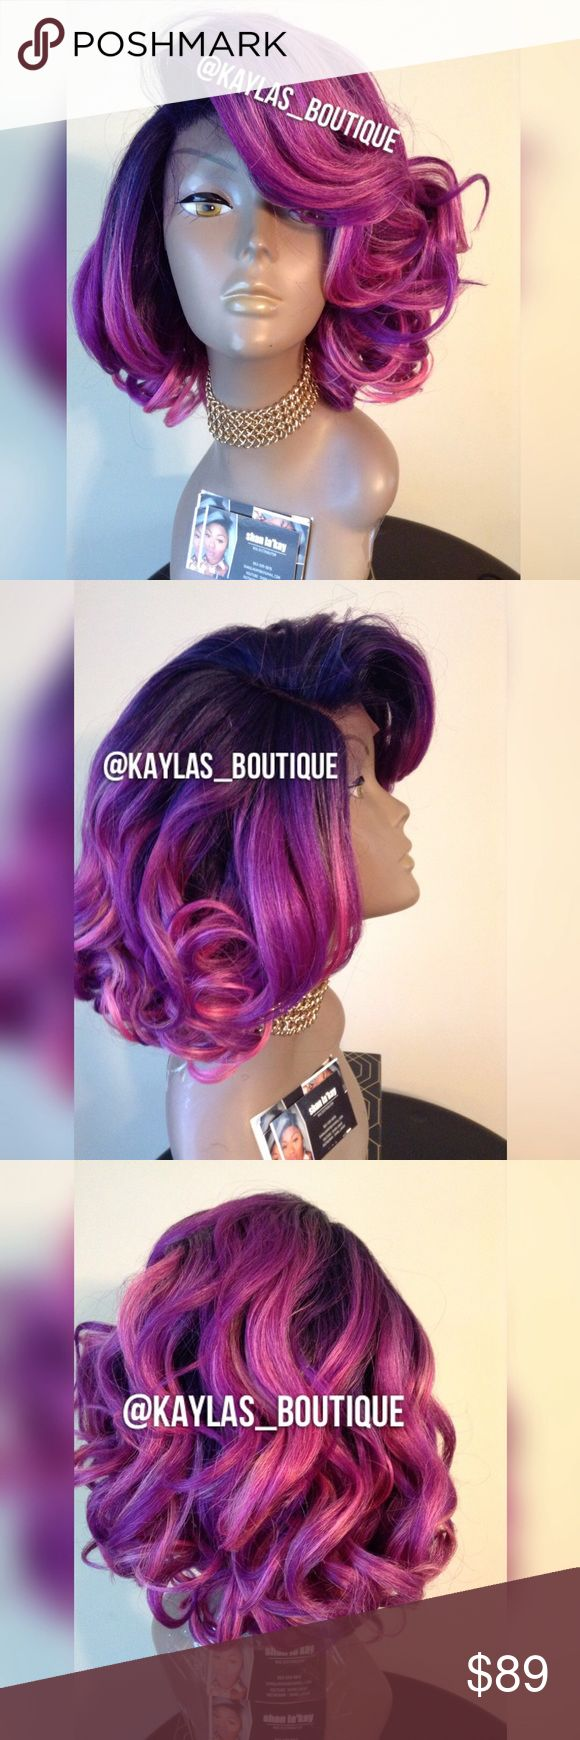 🦄💕💜GORGEOUS SWISS LACE FRONT WIG HUMAN HAIR BLEND GORGEOUS COLOR MIX TAKES HEAT & CAN BE WASHED IF YOUR SOMEONE WHO LOVES COLOR BE SURE TO GRAB HER PERFECT FOR B.DAYS ,MARDI GRAS & IF YOU JUST LOVE EXOTIC HAIR COLORS NO TANGLING NO MATTING BRAND NEW NO REFUNDS NO RETURNS NO EXCHANGES ALL SALES FINAL 🎁I DO NOT TRADE AT ALL #NEVER 🎁NOT ACCEPTING OFFERS 🎁NO HOLDS 🎁PRICE IS FIRM 👑ACTUAL PHOTOS OF MY PRODUCT & MY WORK NO SCREENSHOTS NO STOCK PHOTOS  📣I DO NOT TRADE📣  💌SHIPPING POLICY…